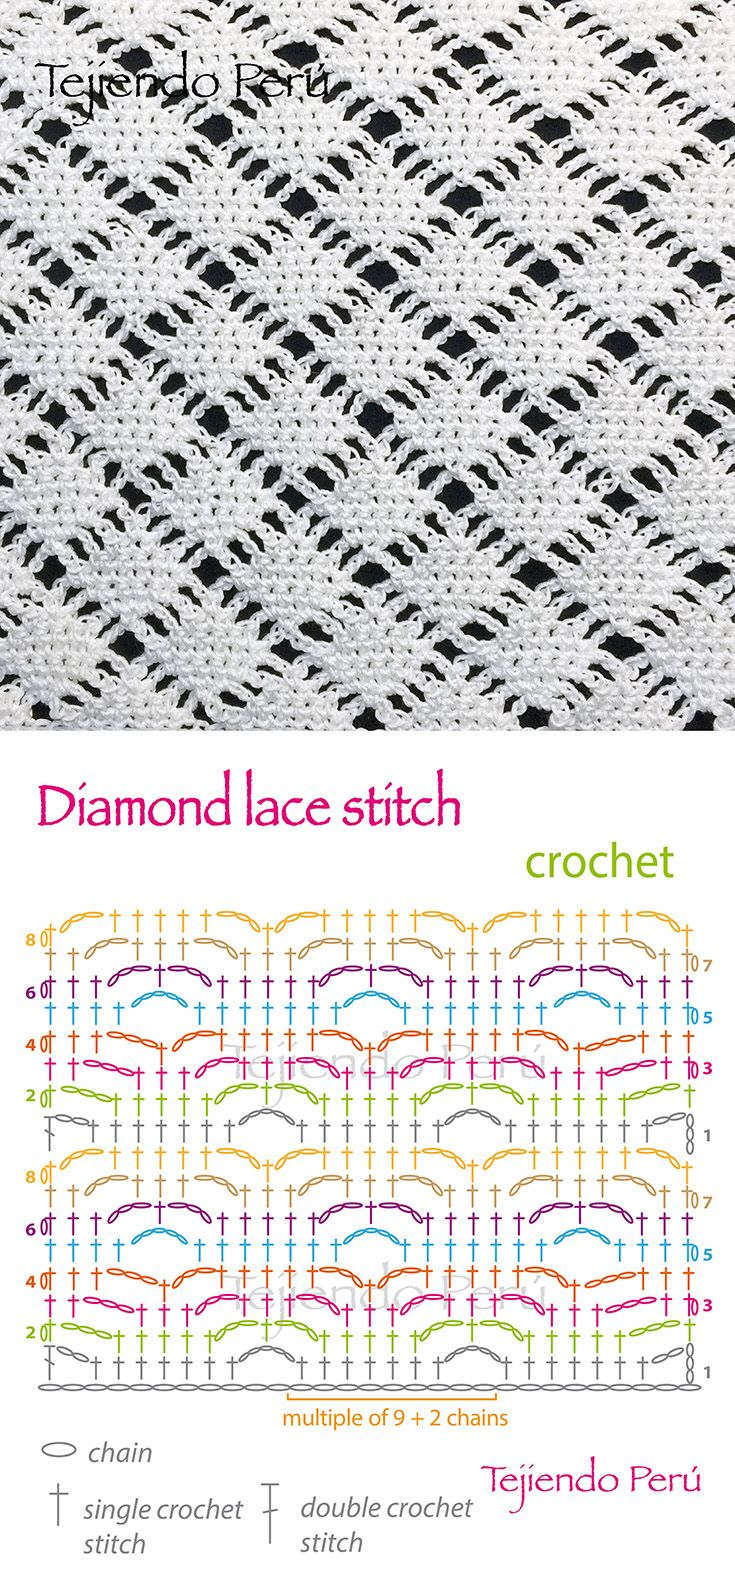 Crochet Diamond Lace Stitch Diagram 2 Pinterest Single